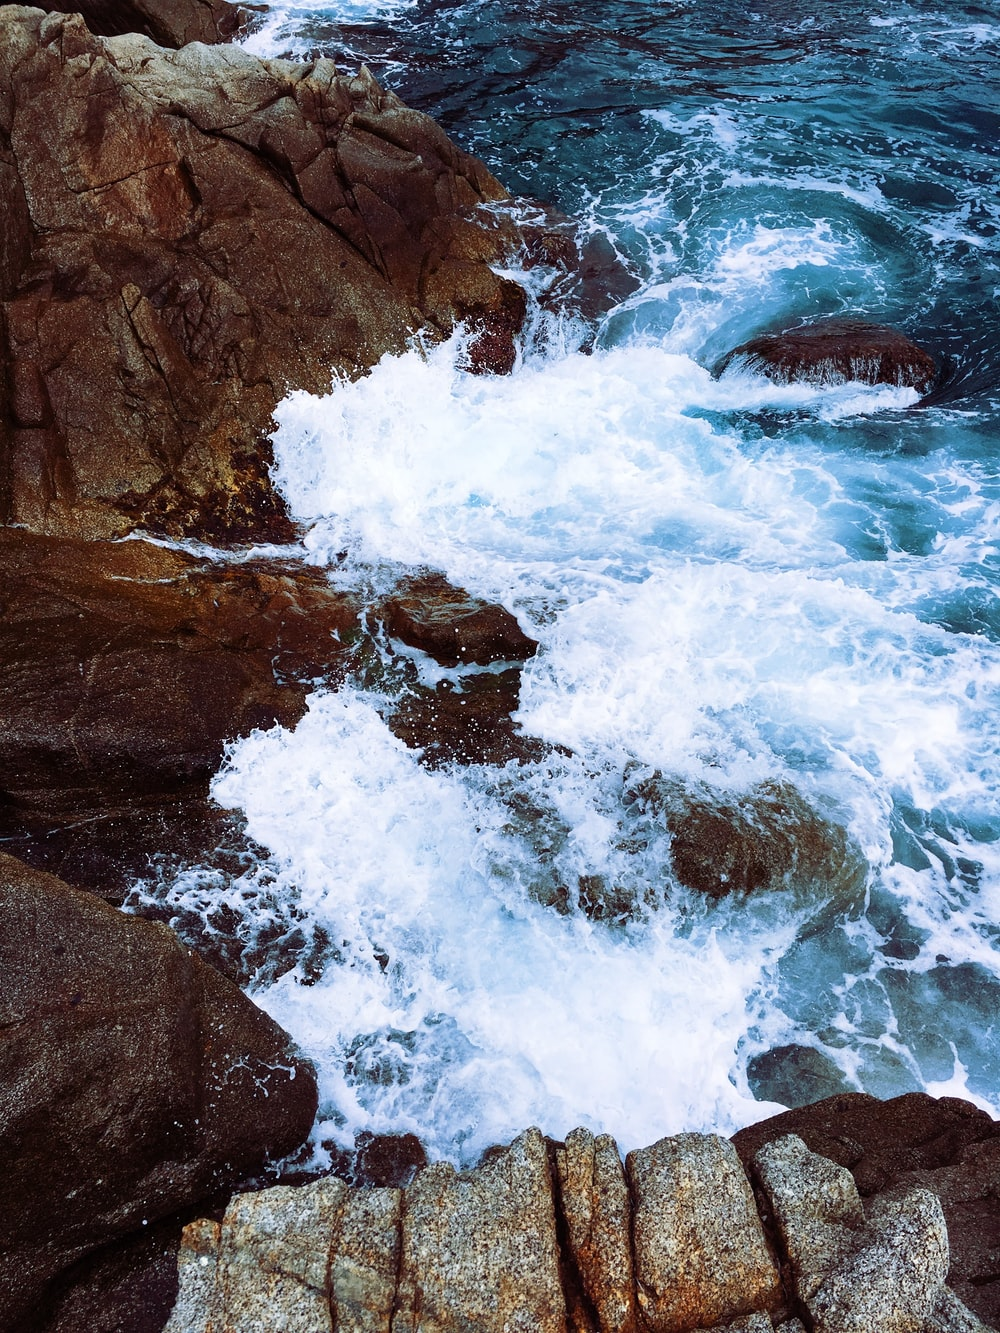 time lapse photography of waves splashing on rocks